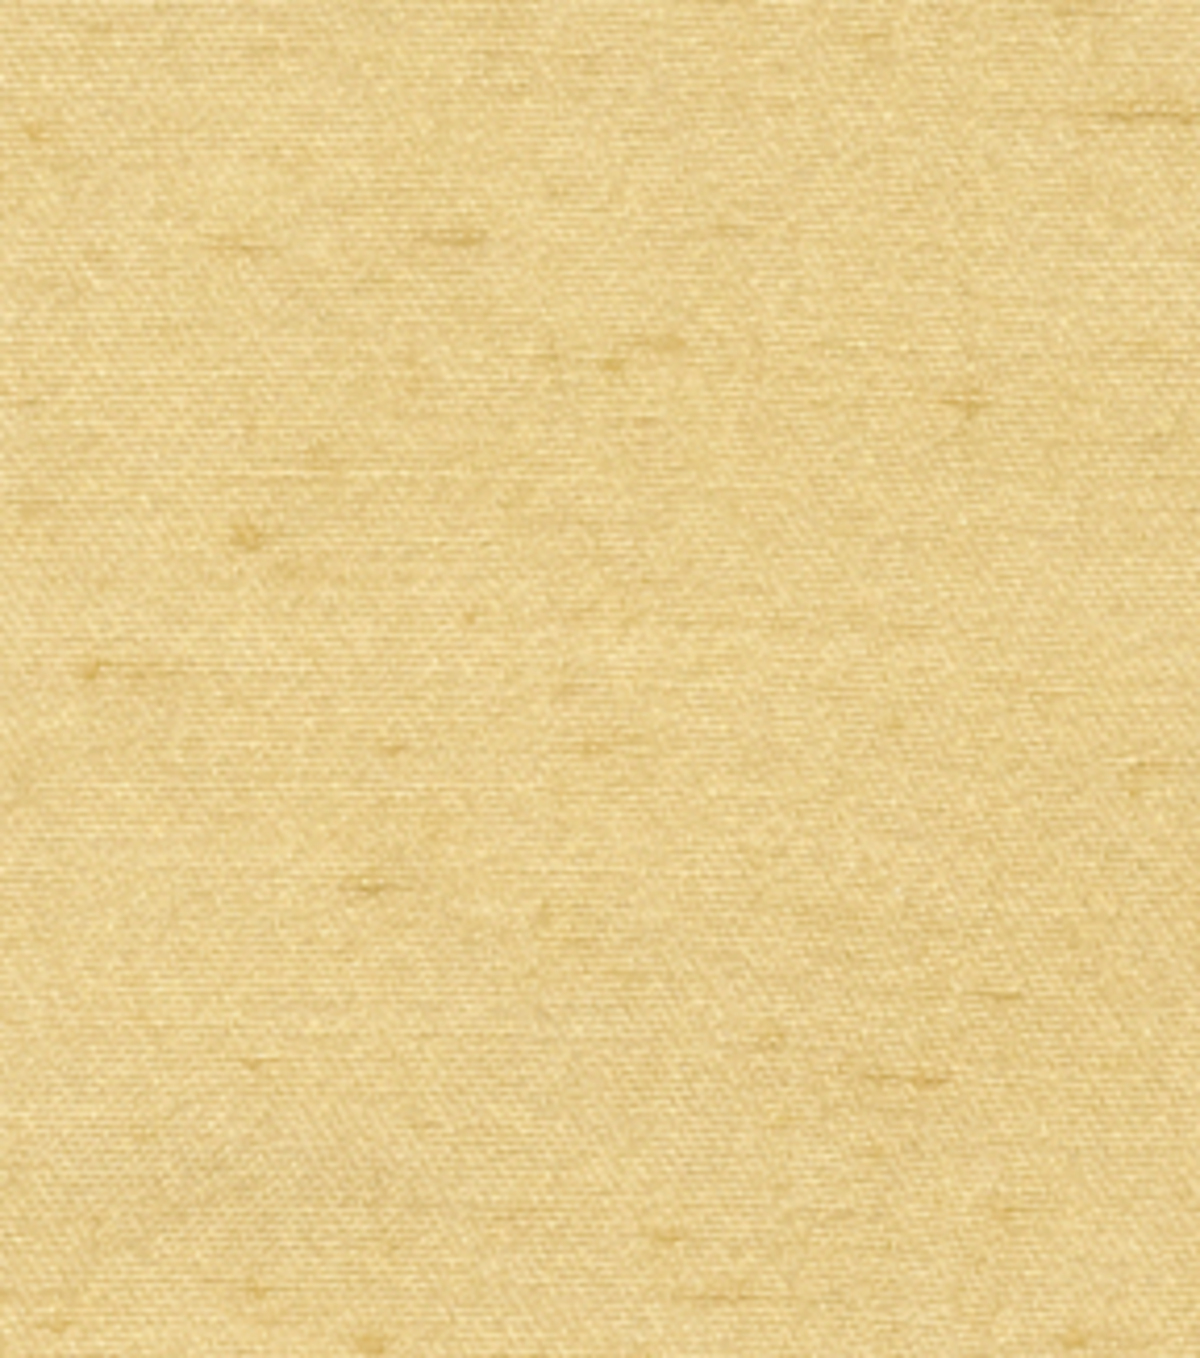 Home Decor 8\u0022x8\u0022 Fabric Swatch-Signature Series Antique Satin Harvest